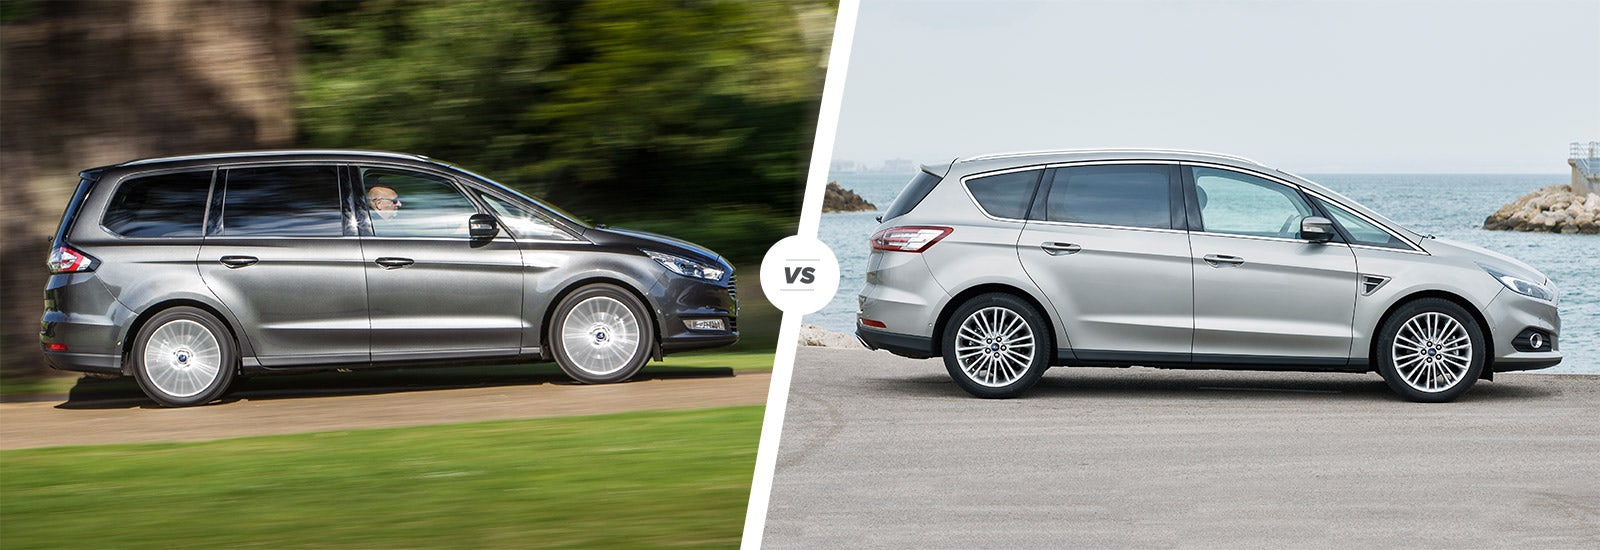 Ford galaxy vs ford s max driving